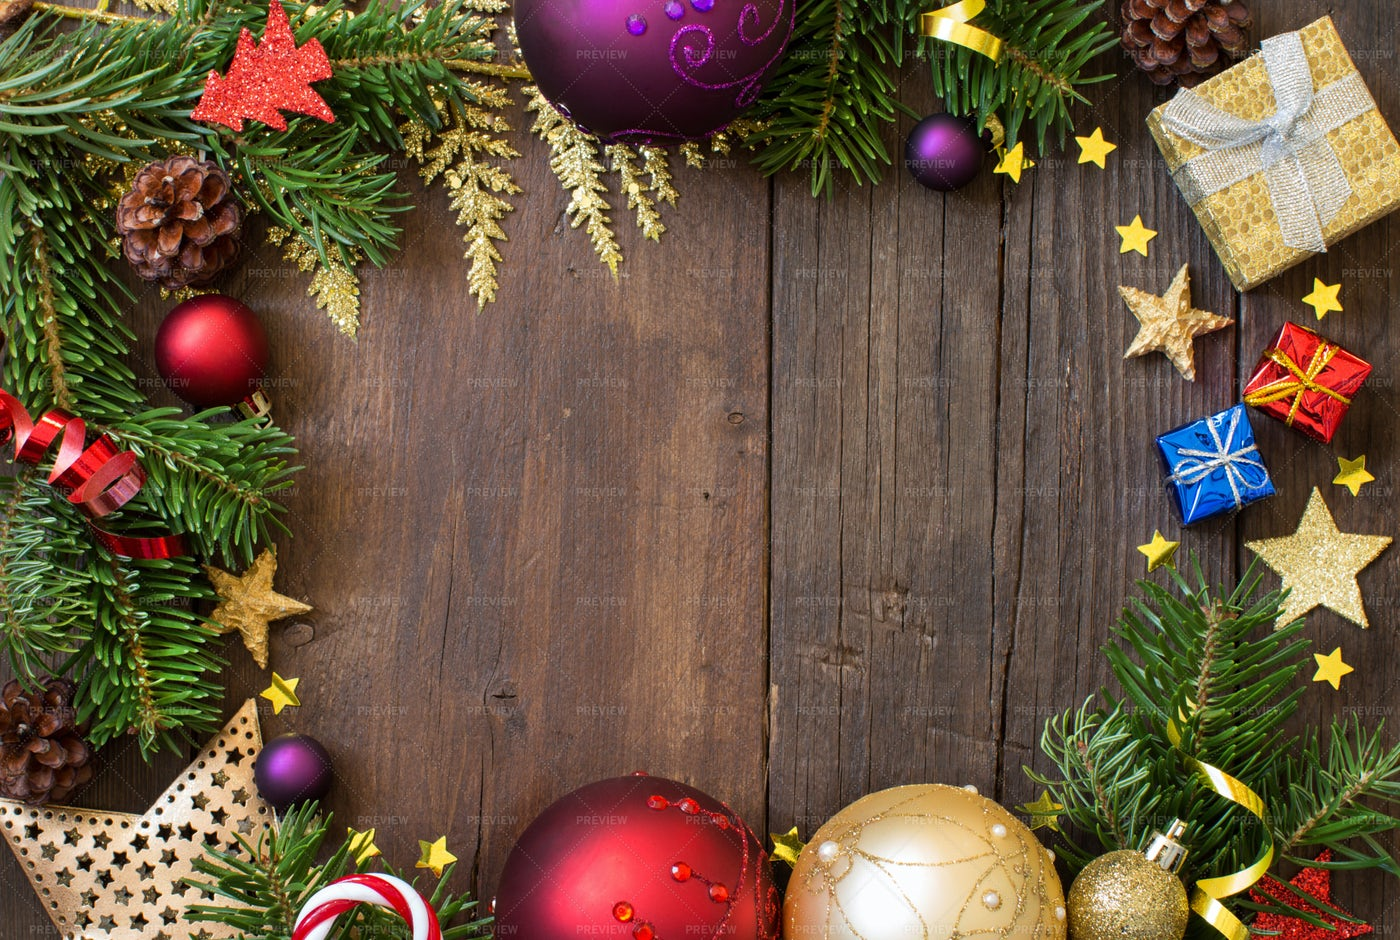 Christmas Decorations In Frame: Stock Photos